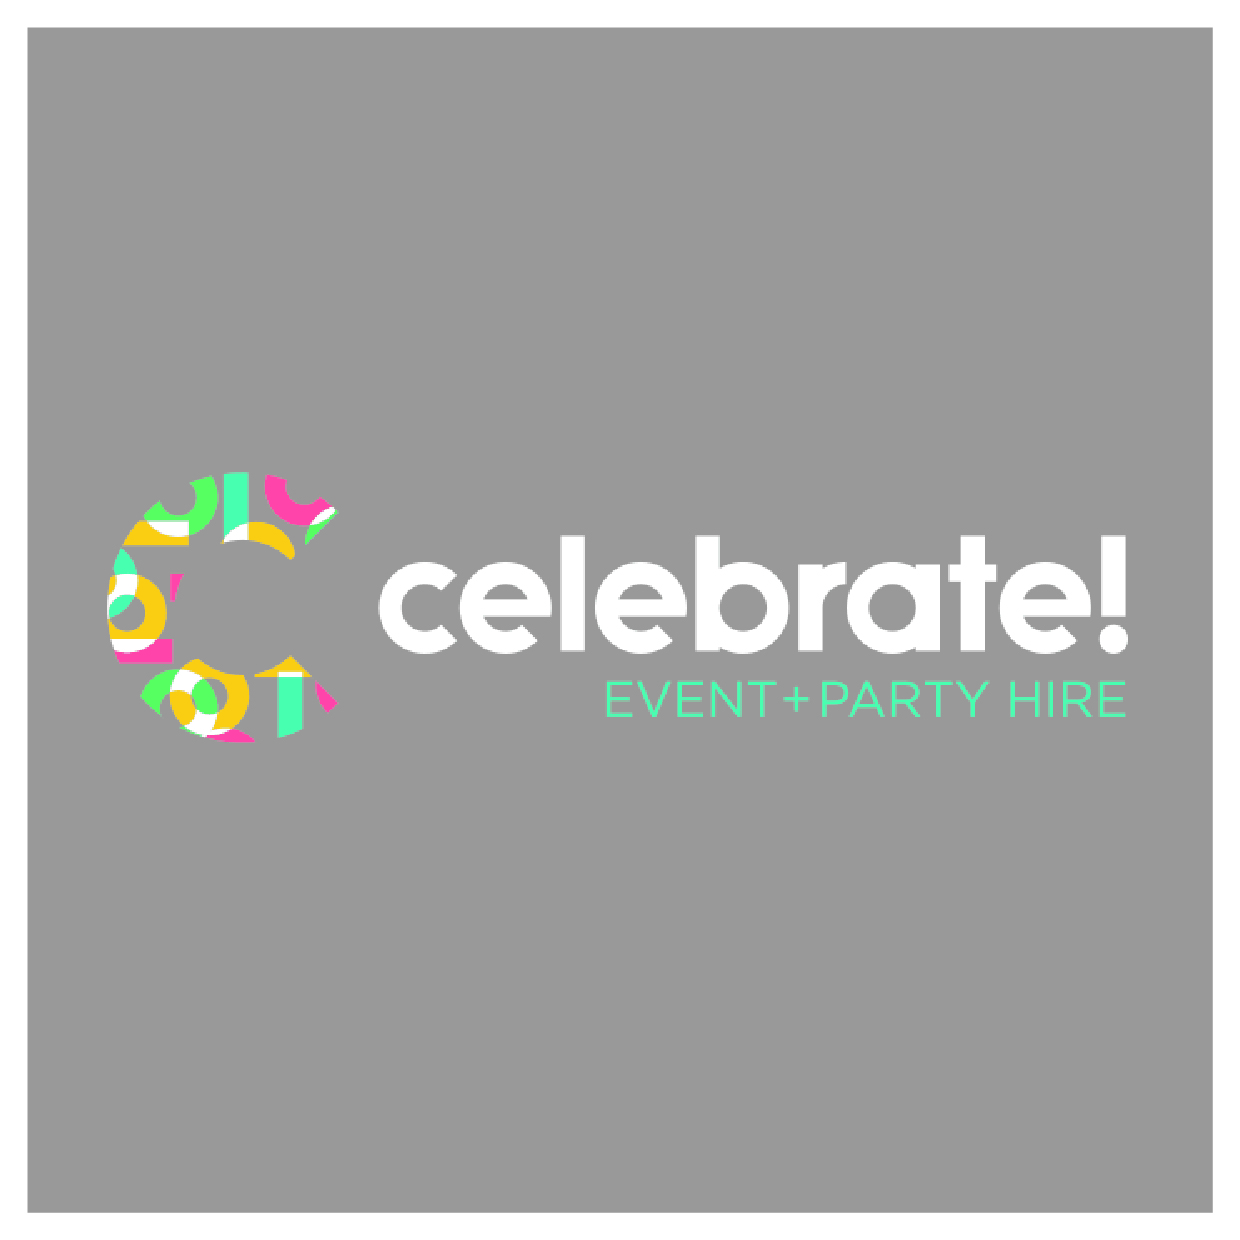 celebrate-event-party-hire